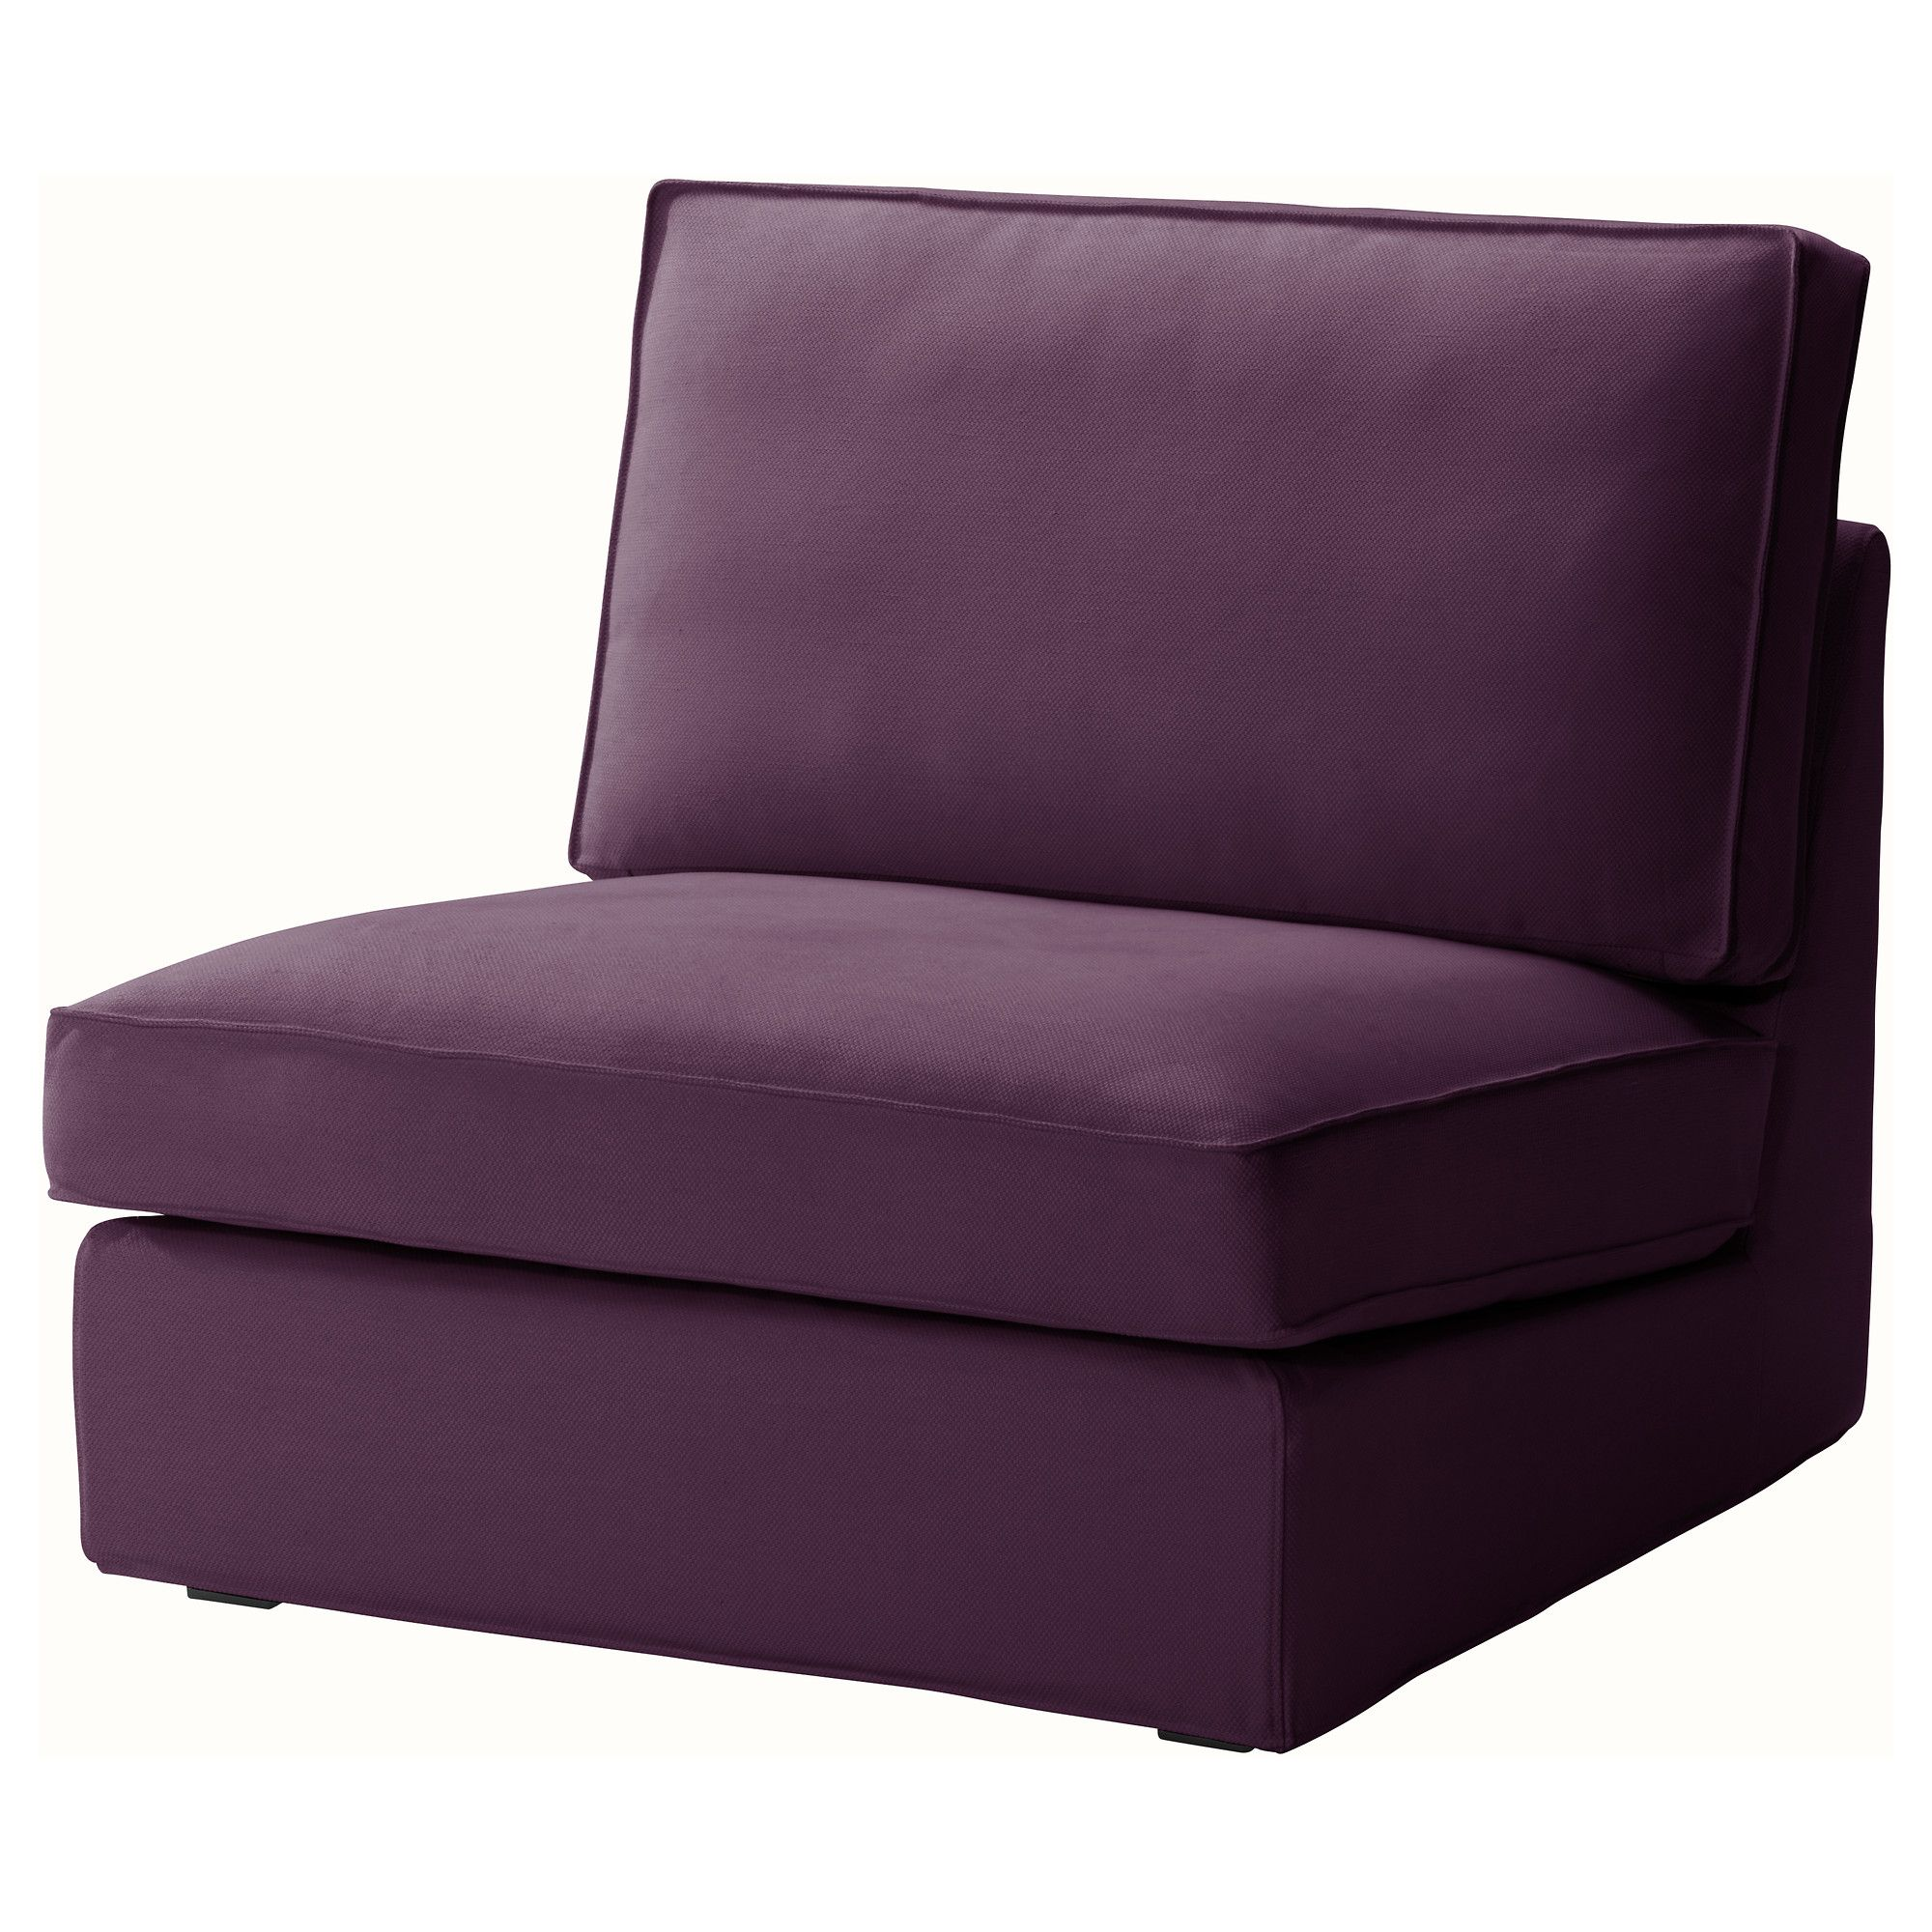 Kivik Sessel Kivik One Seat Section Dansbo Lilac Ikea Ikea Ideas Ikea